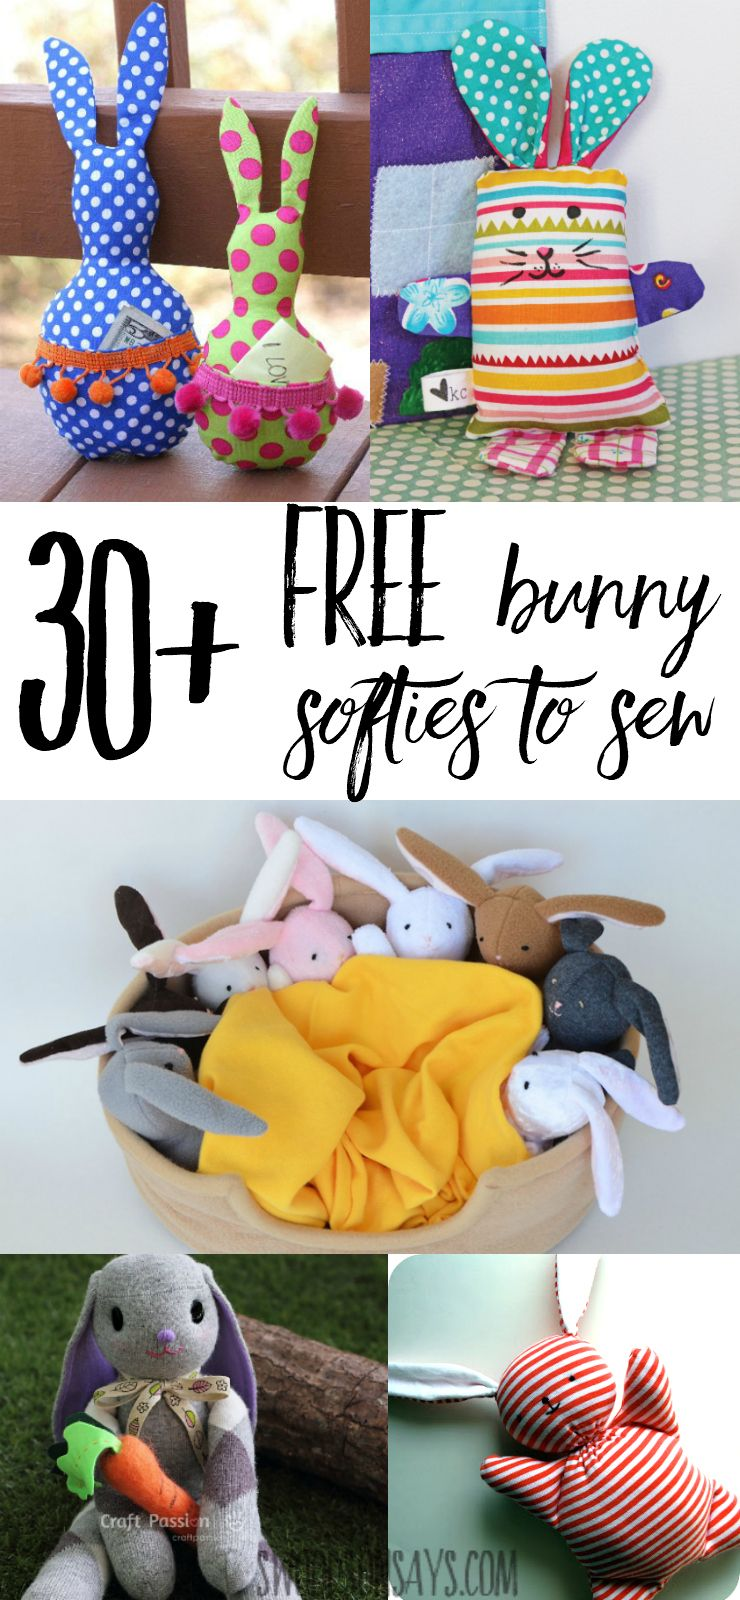 50+ Stuffed Bunny Sewing Patterns